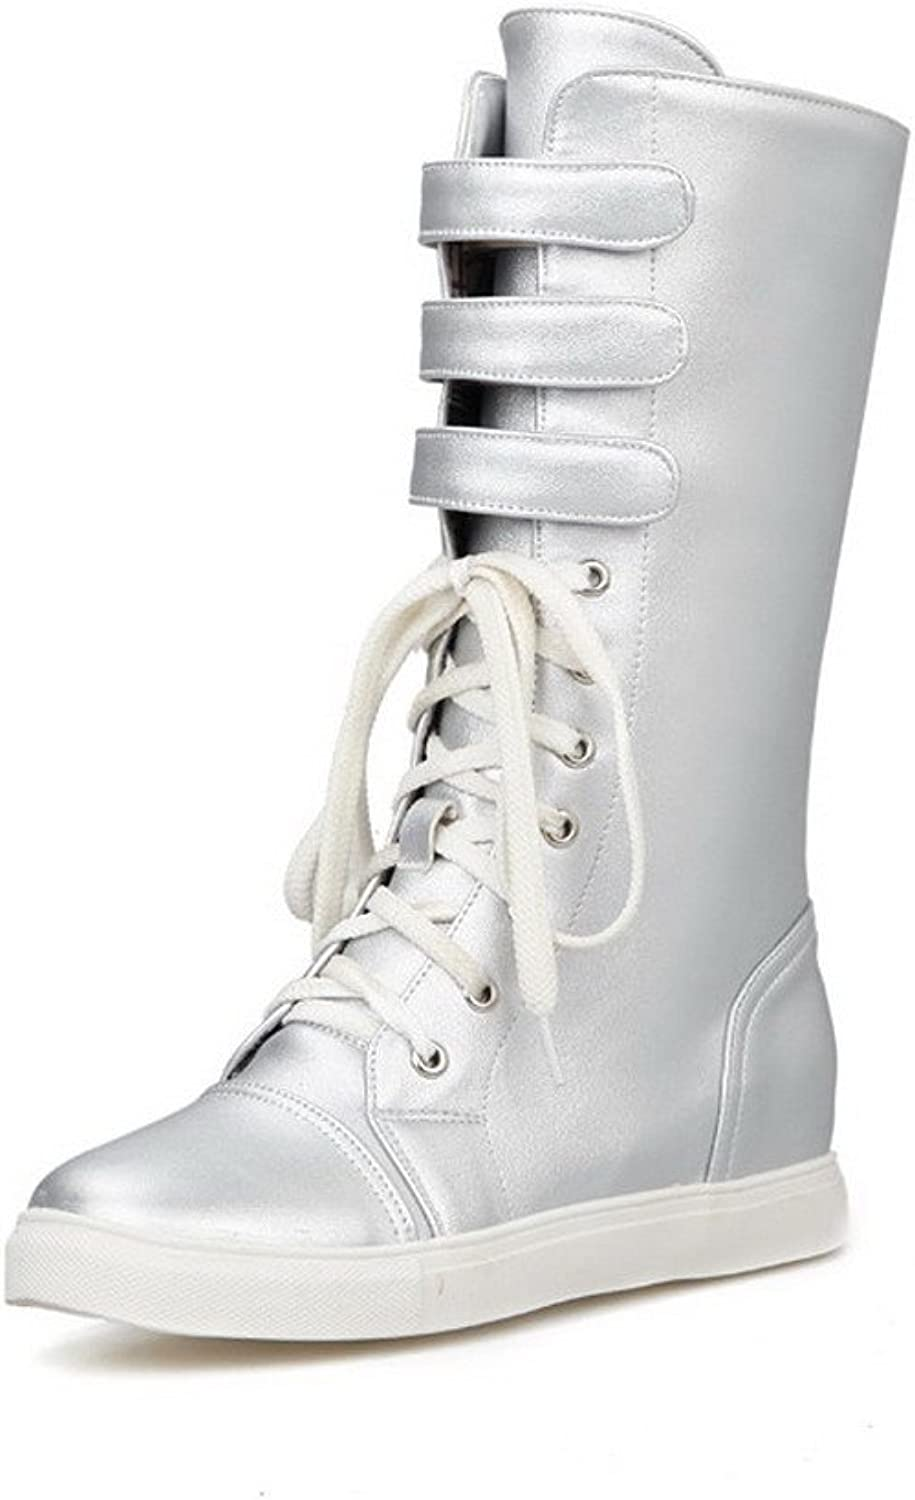 Weenfashion Women's Low-Heels Round Closed Toe Blend Materials Mid-top Boots